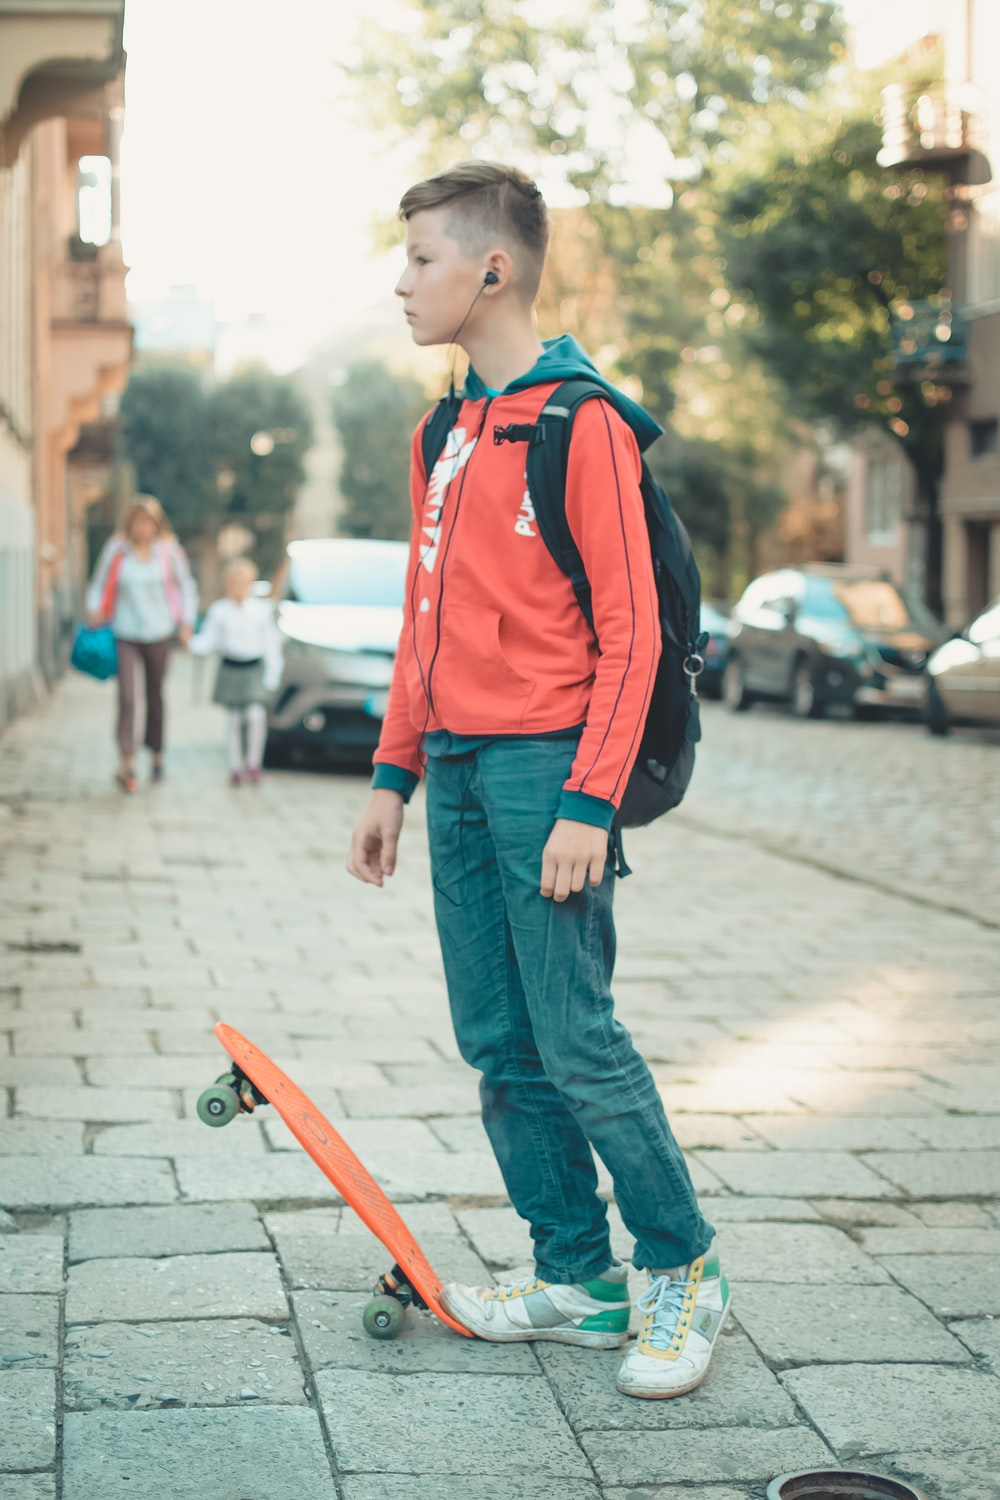 boy with backpack and earbuds standing near orange skateboard